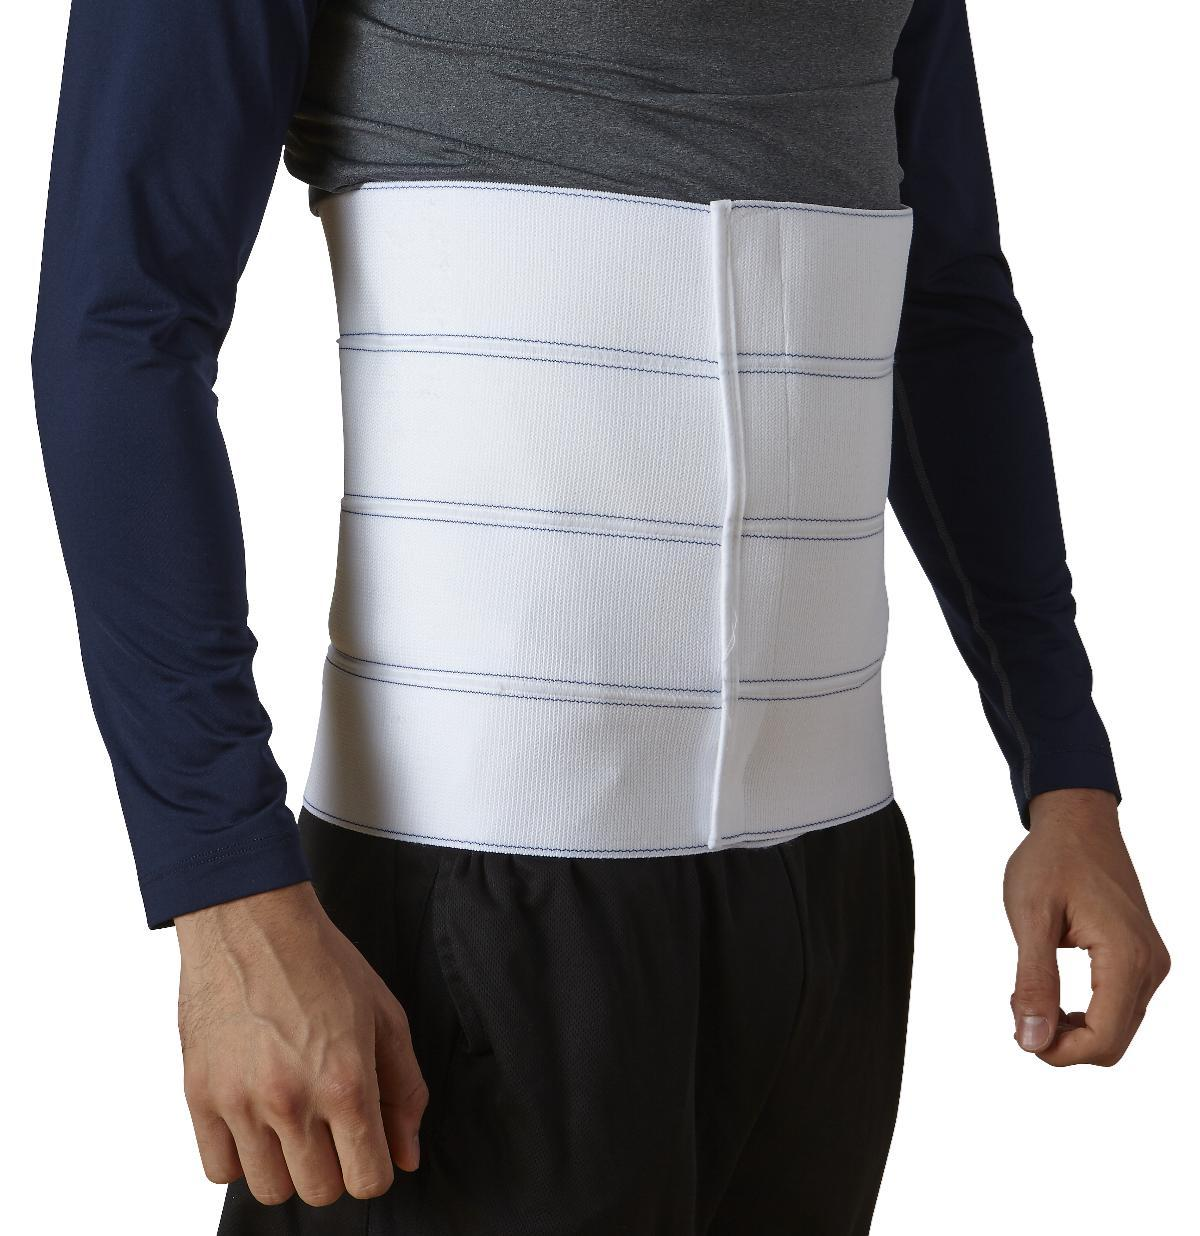 Therapy & Fitness Orthopedic Soft Goods Abdominal Binders & Ribs Belts - Ort213002xl - Binder Abdominal 12 4-panl 60-75 Ea ORT213002XL